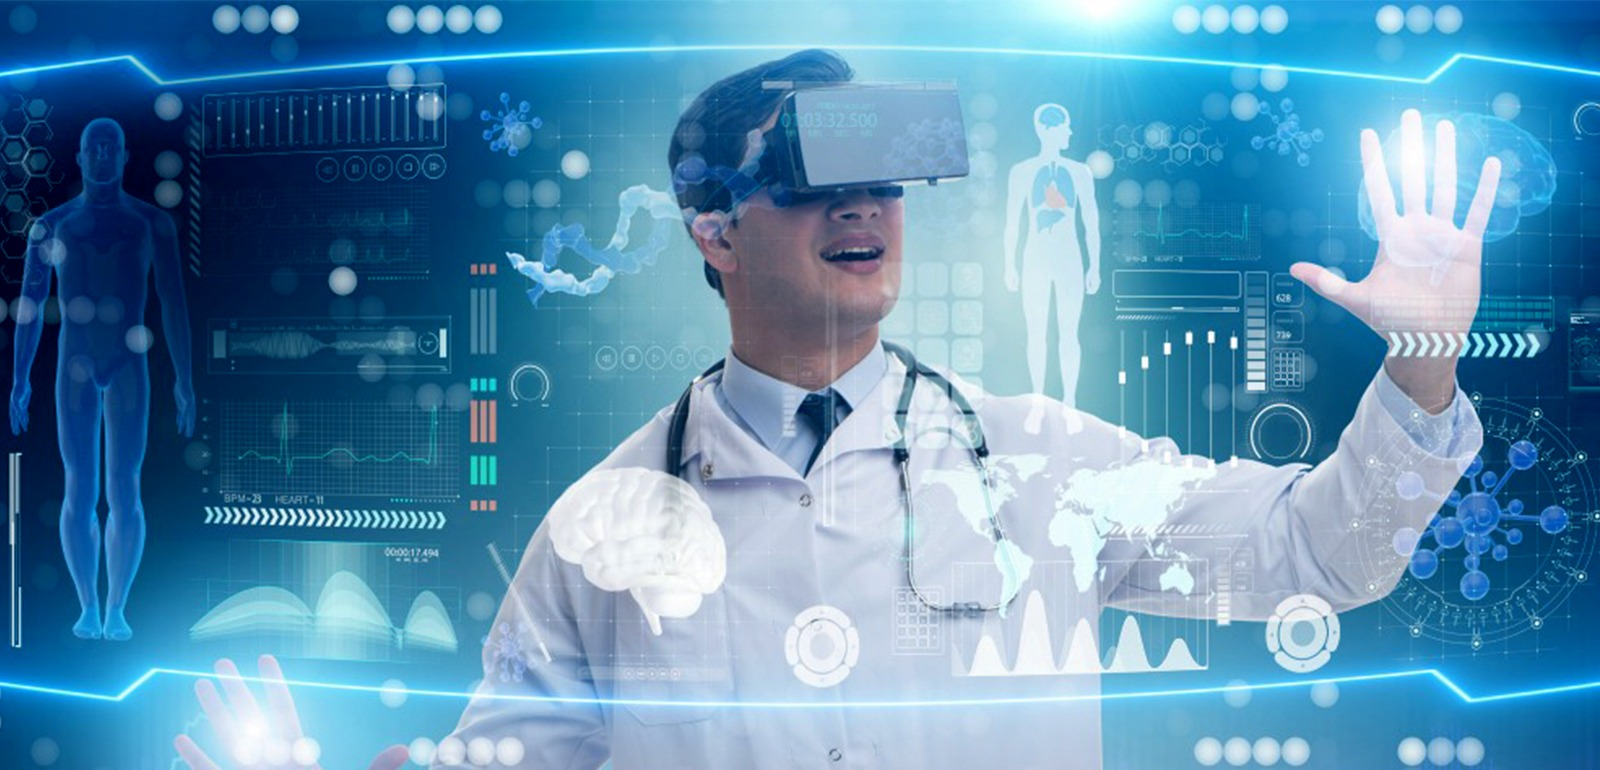 Benefits of AR/VR in healthcare